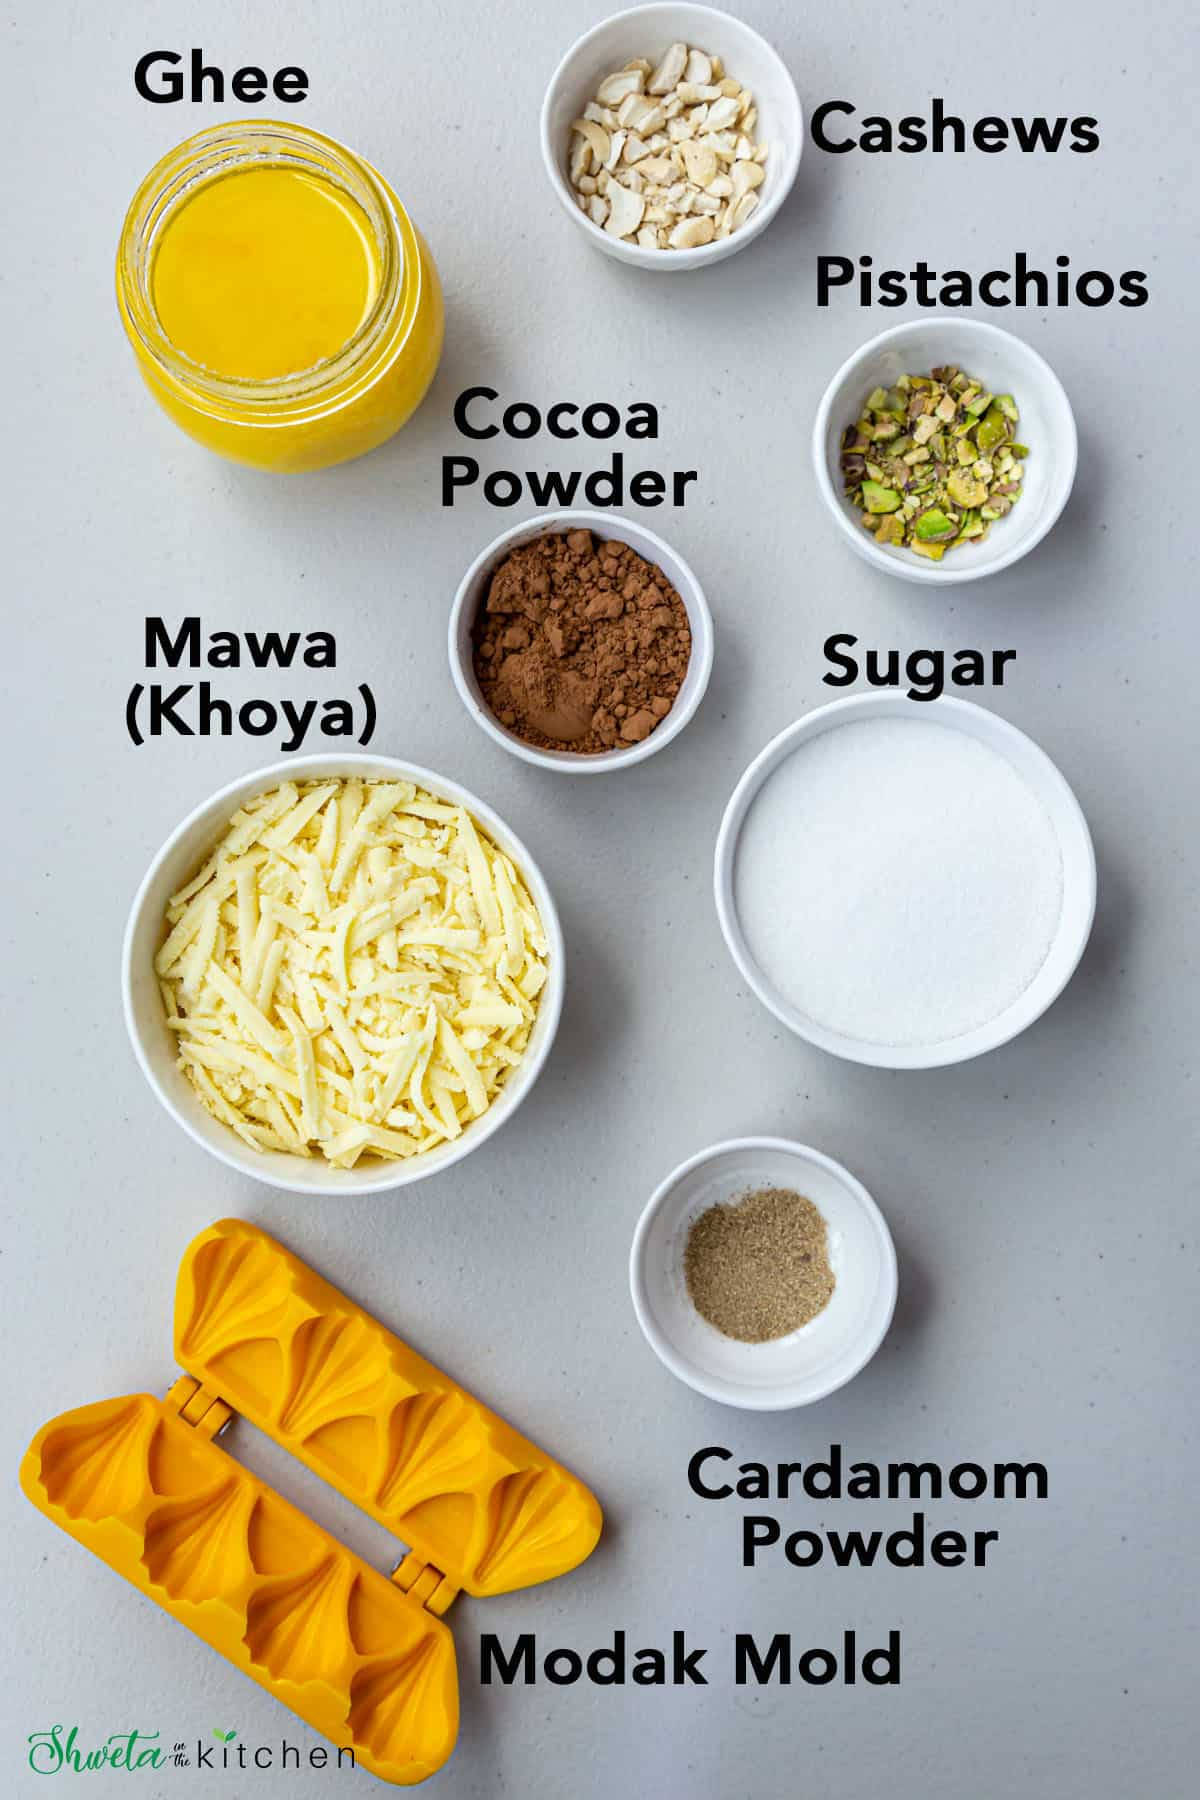 Chocolate Modak Ingredients in bowls aalong with yellow modak mold n white gray surface